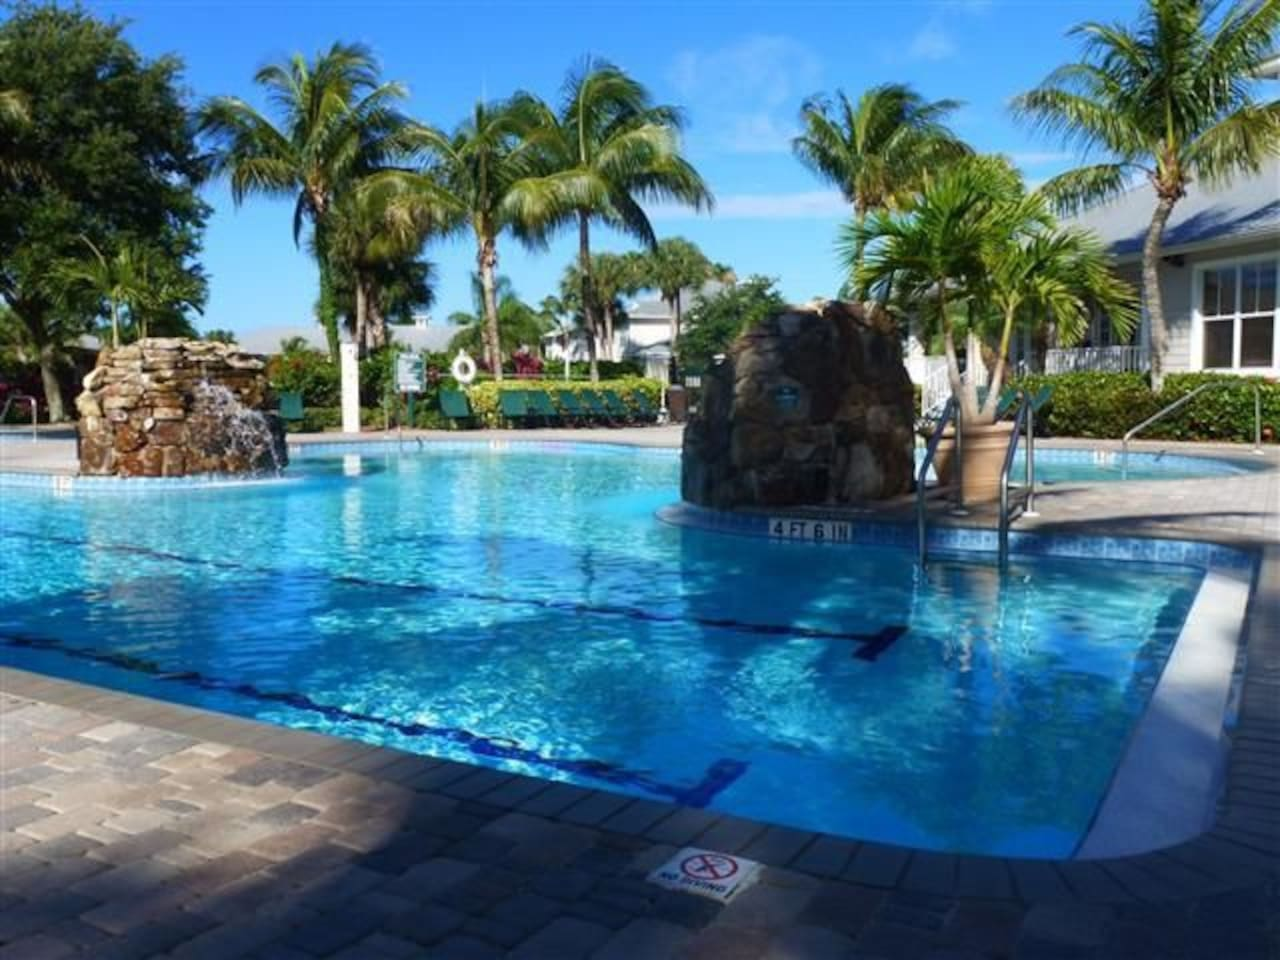 Pool is a convenient 2 minute walk from the condo.  Cooler provided to bring your own beverages to enjoy at the pool.